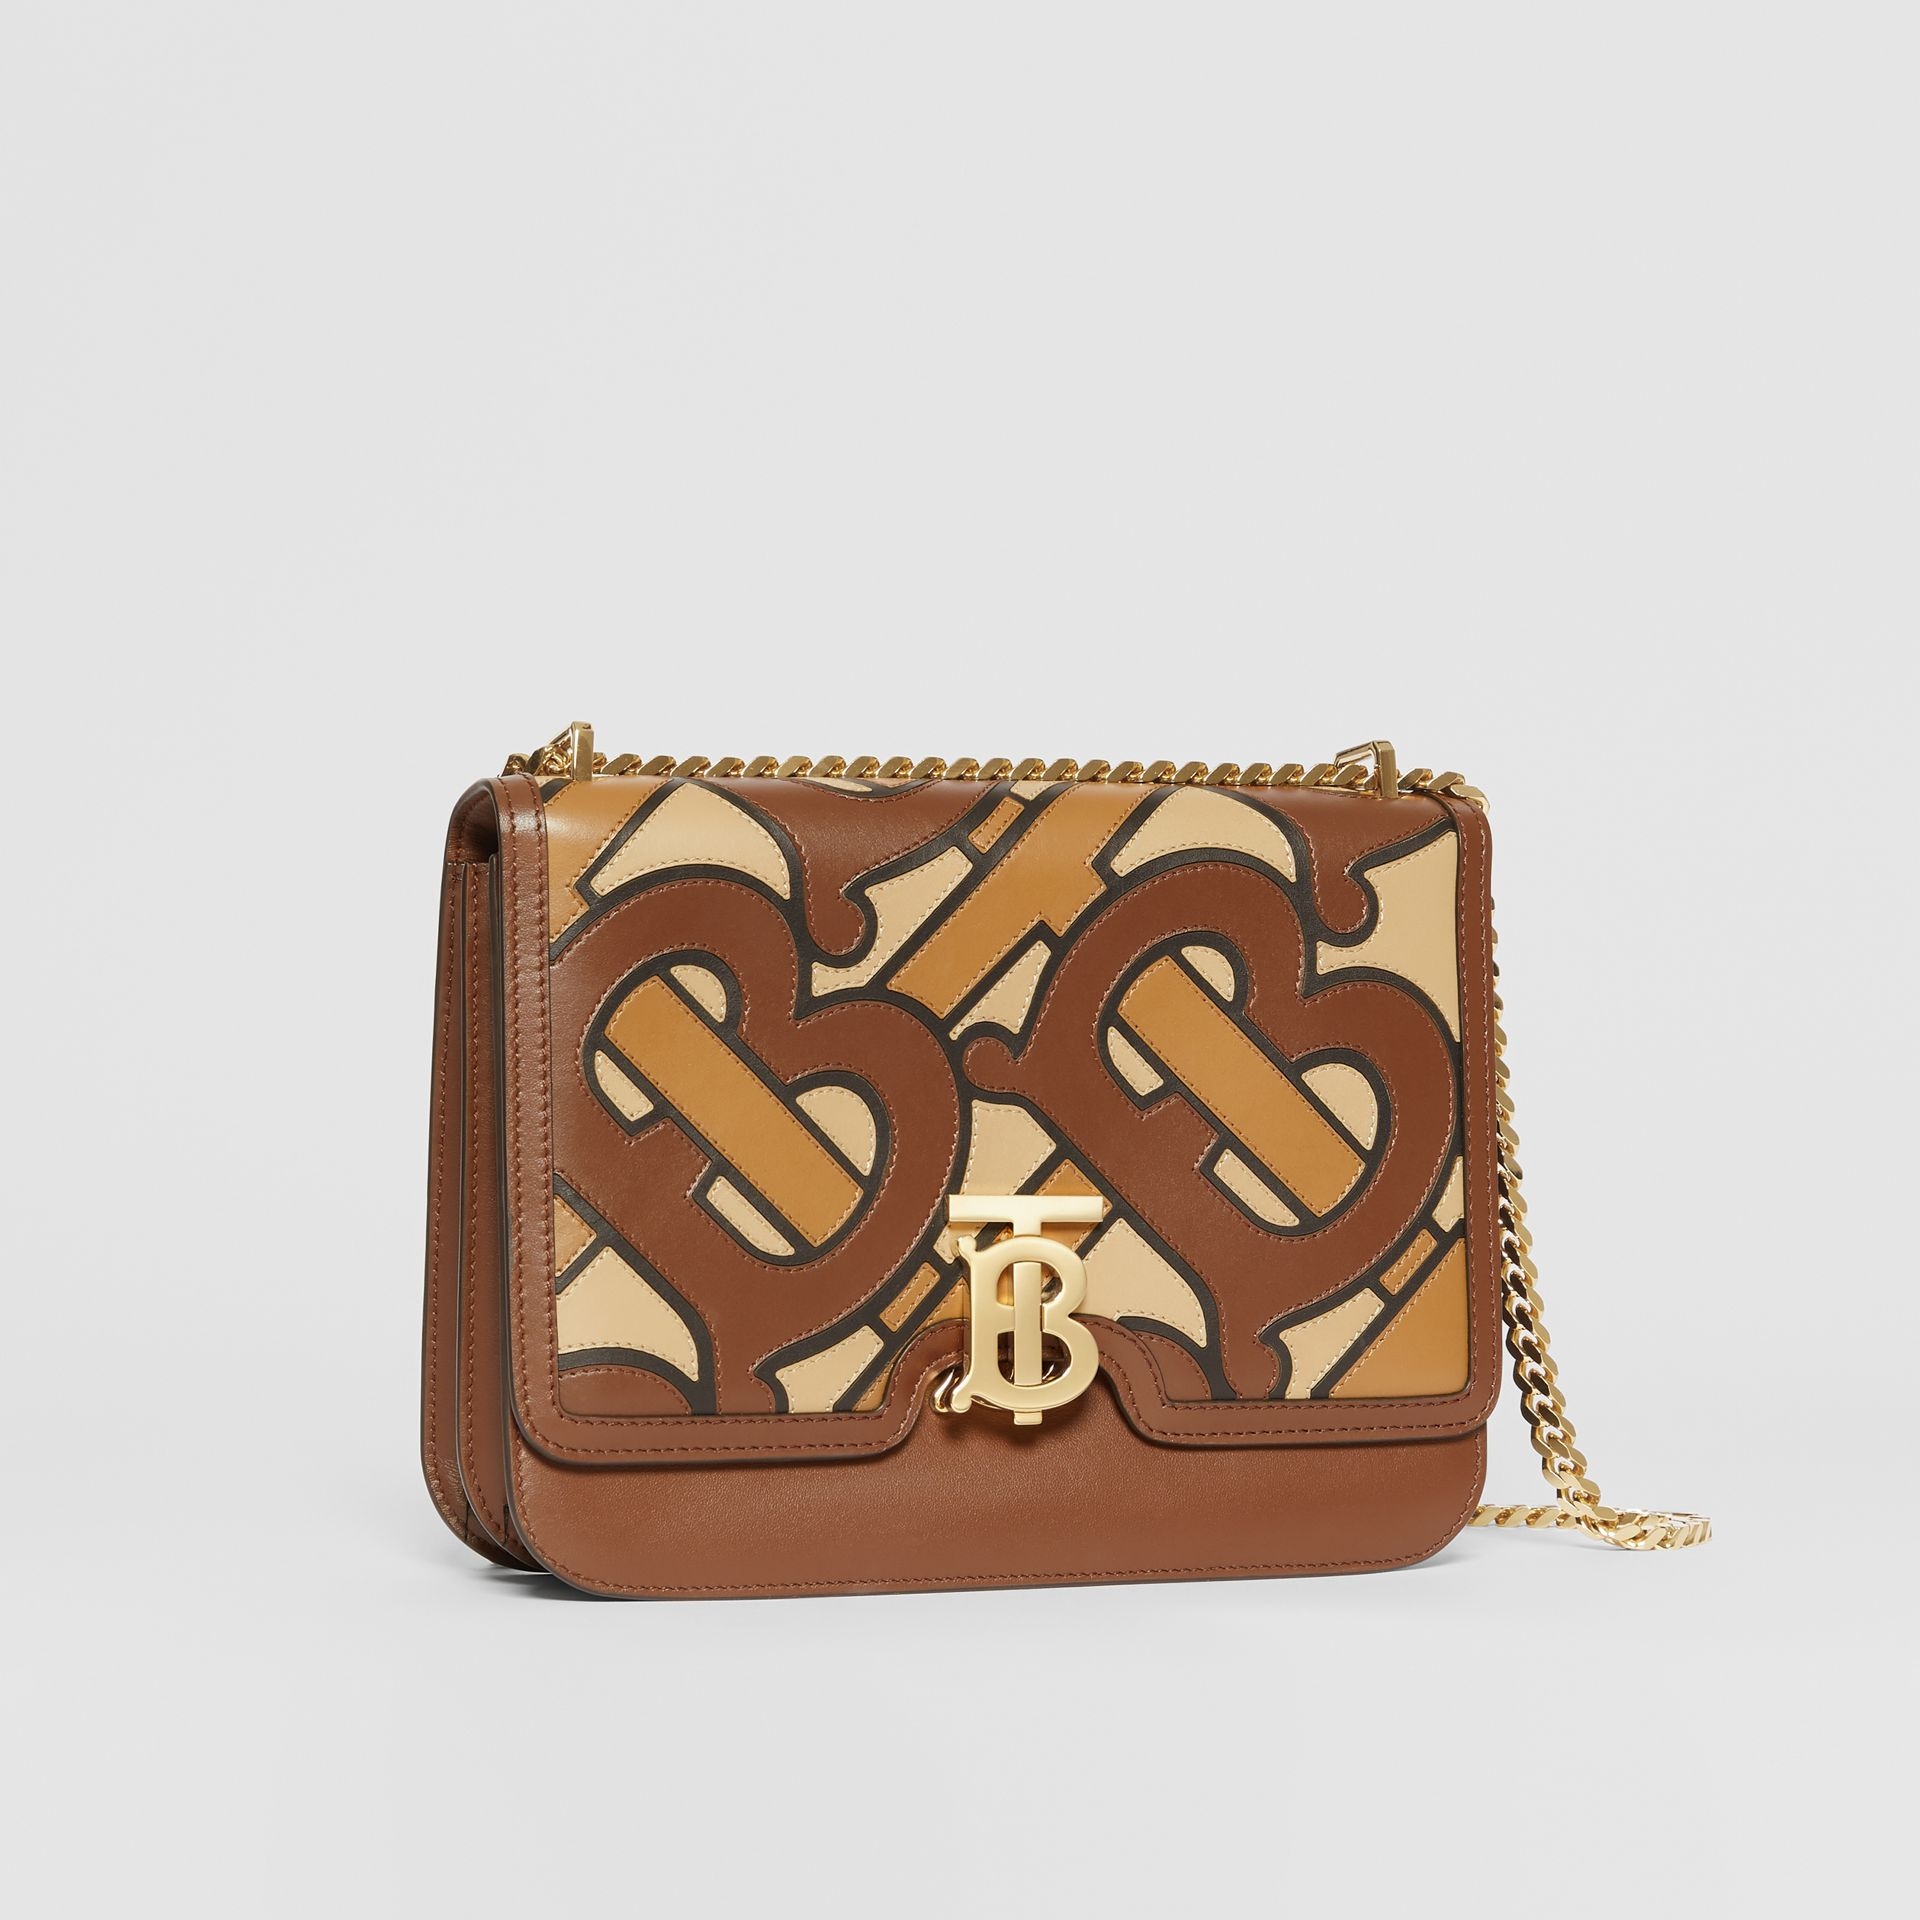 Medium Monogram Appliqué Leather TB Bag in Brown - Women | Burberry - gallery image 6